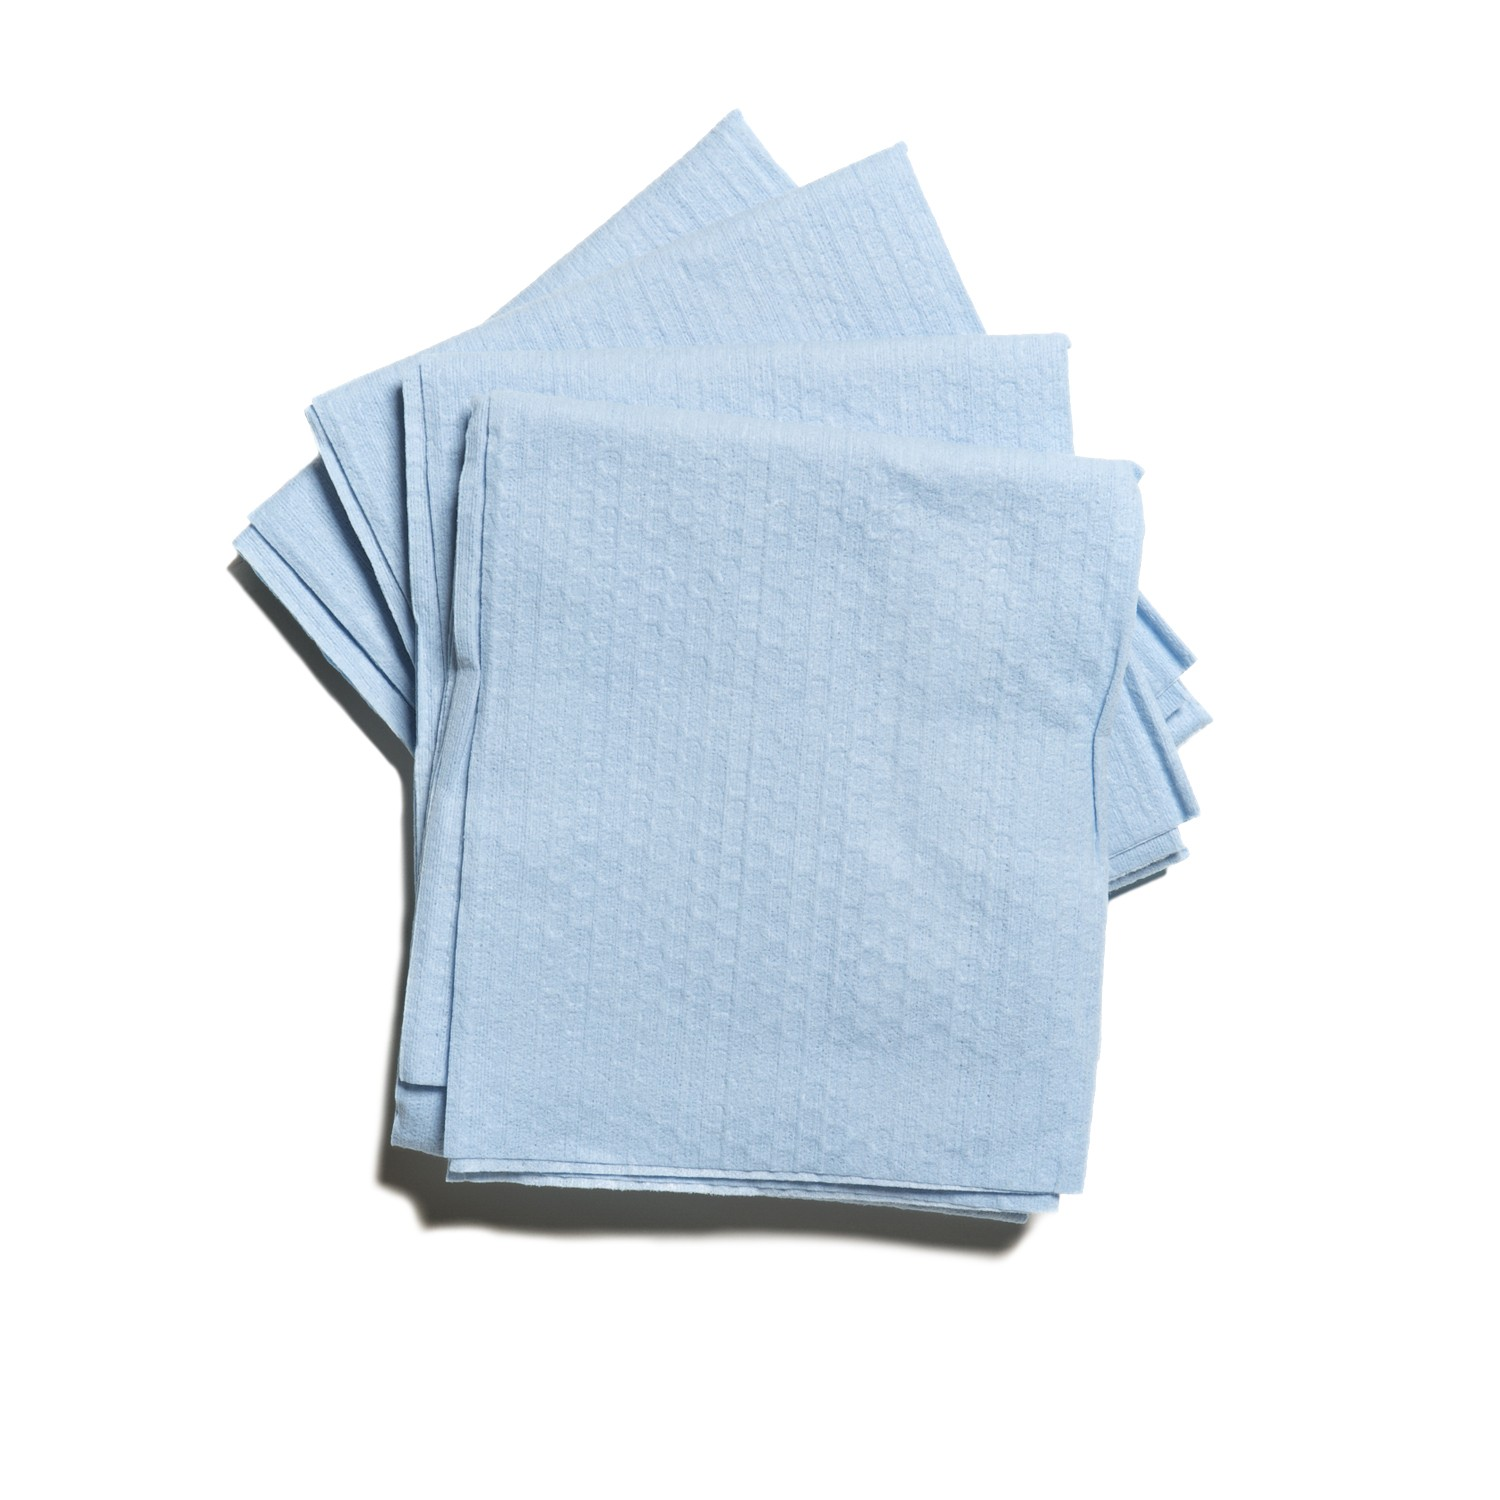 Huck Surgical Towels: Disposable Huck Towel